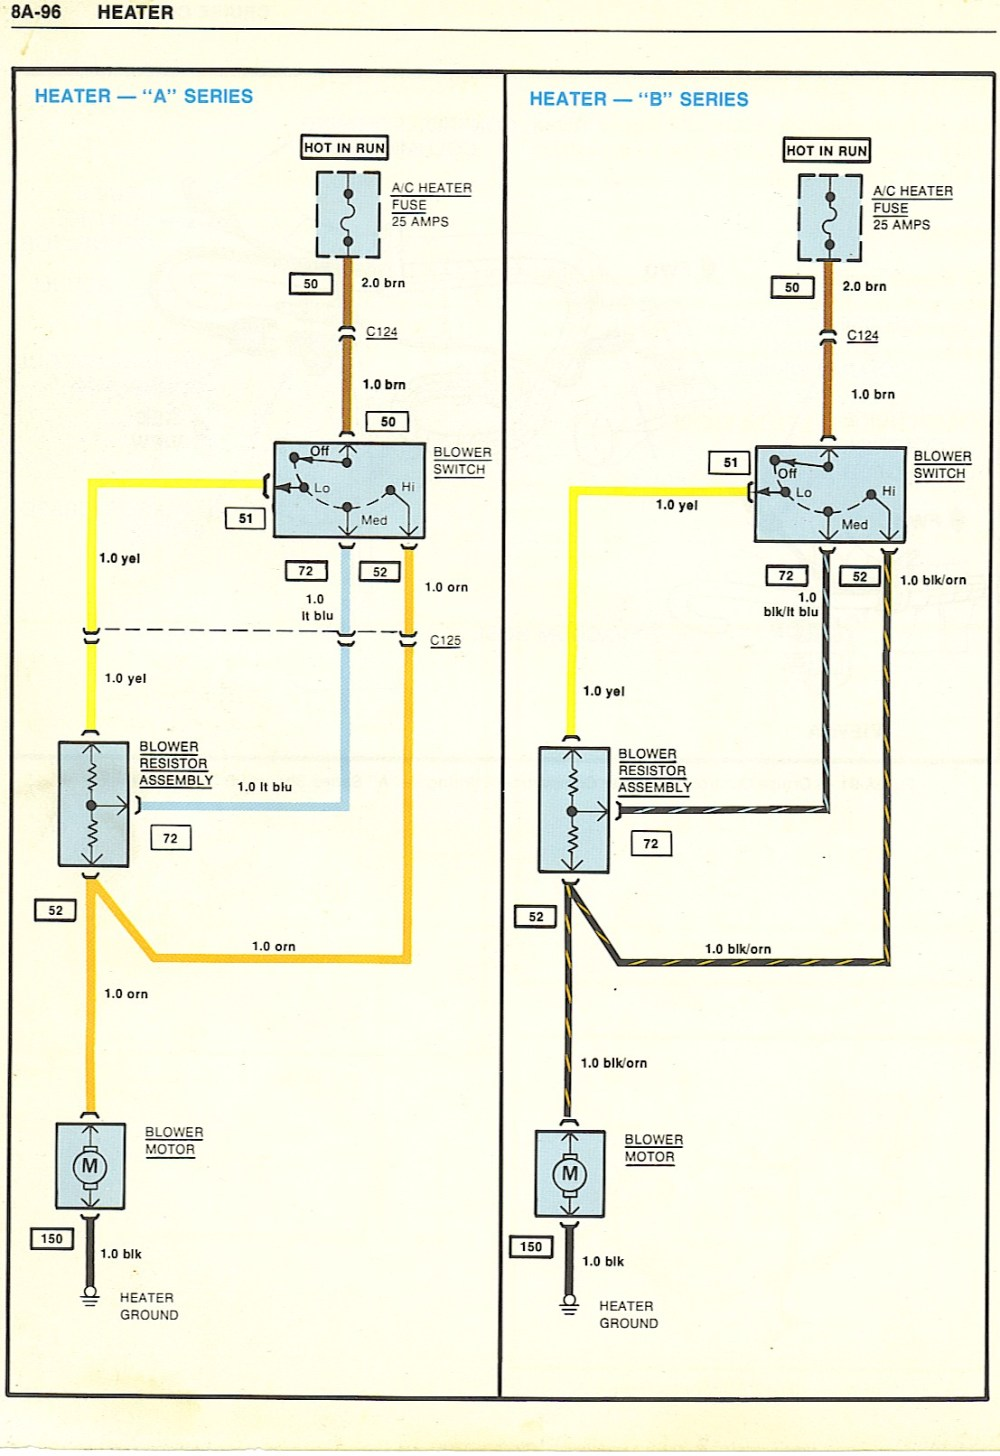 medium resolution of 1968 el camino wiper switch wiring diagram simple wiring schema 64 chevelle horn relay wiring diagram free download wiring diagram